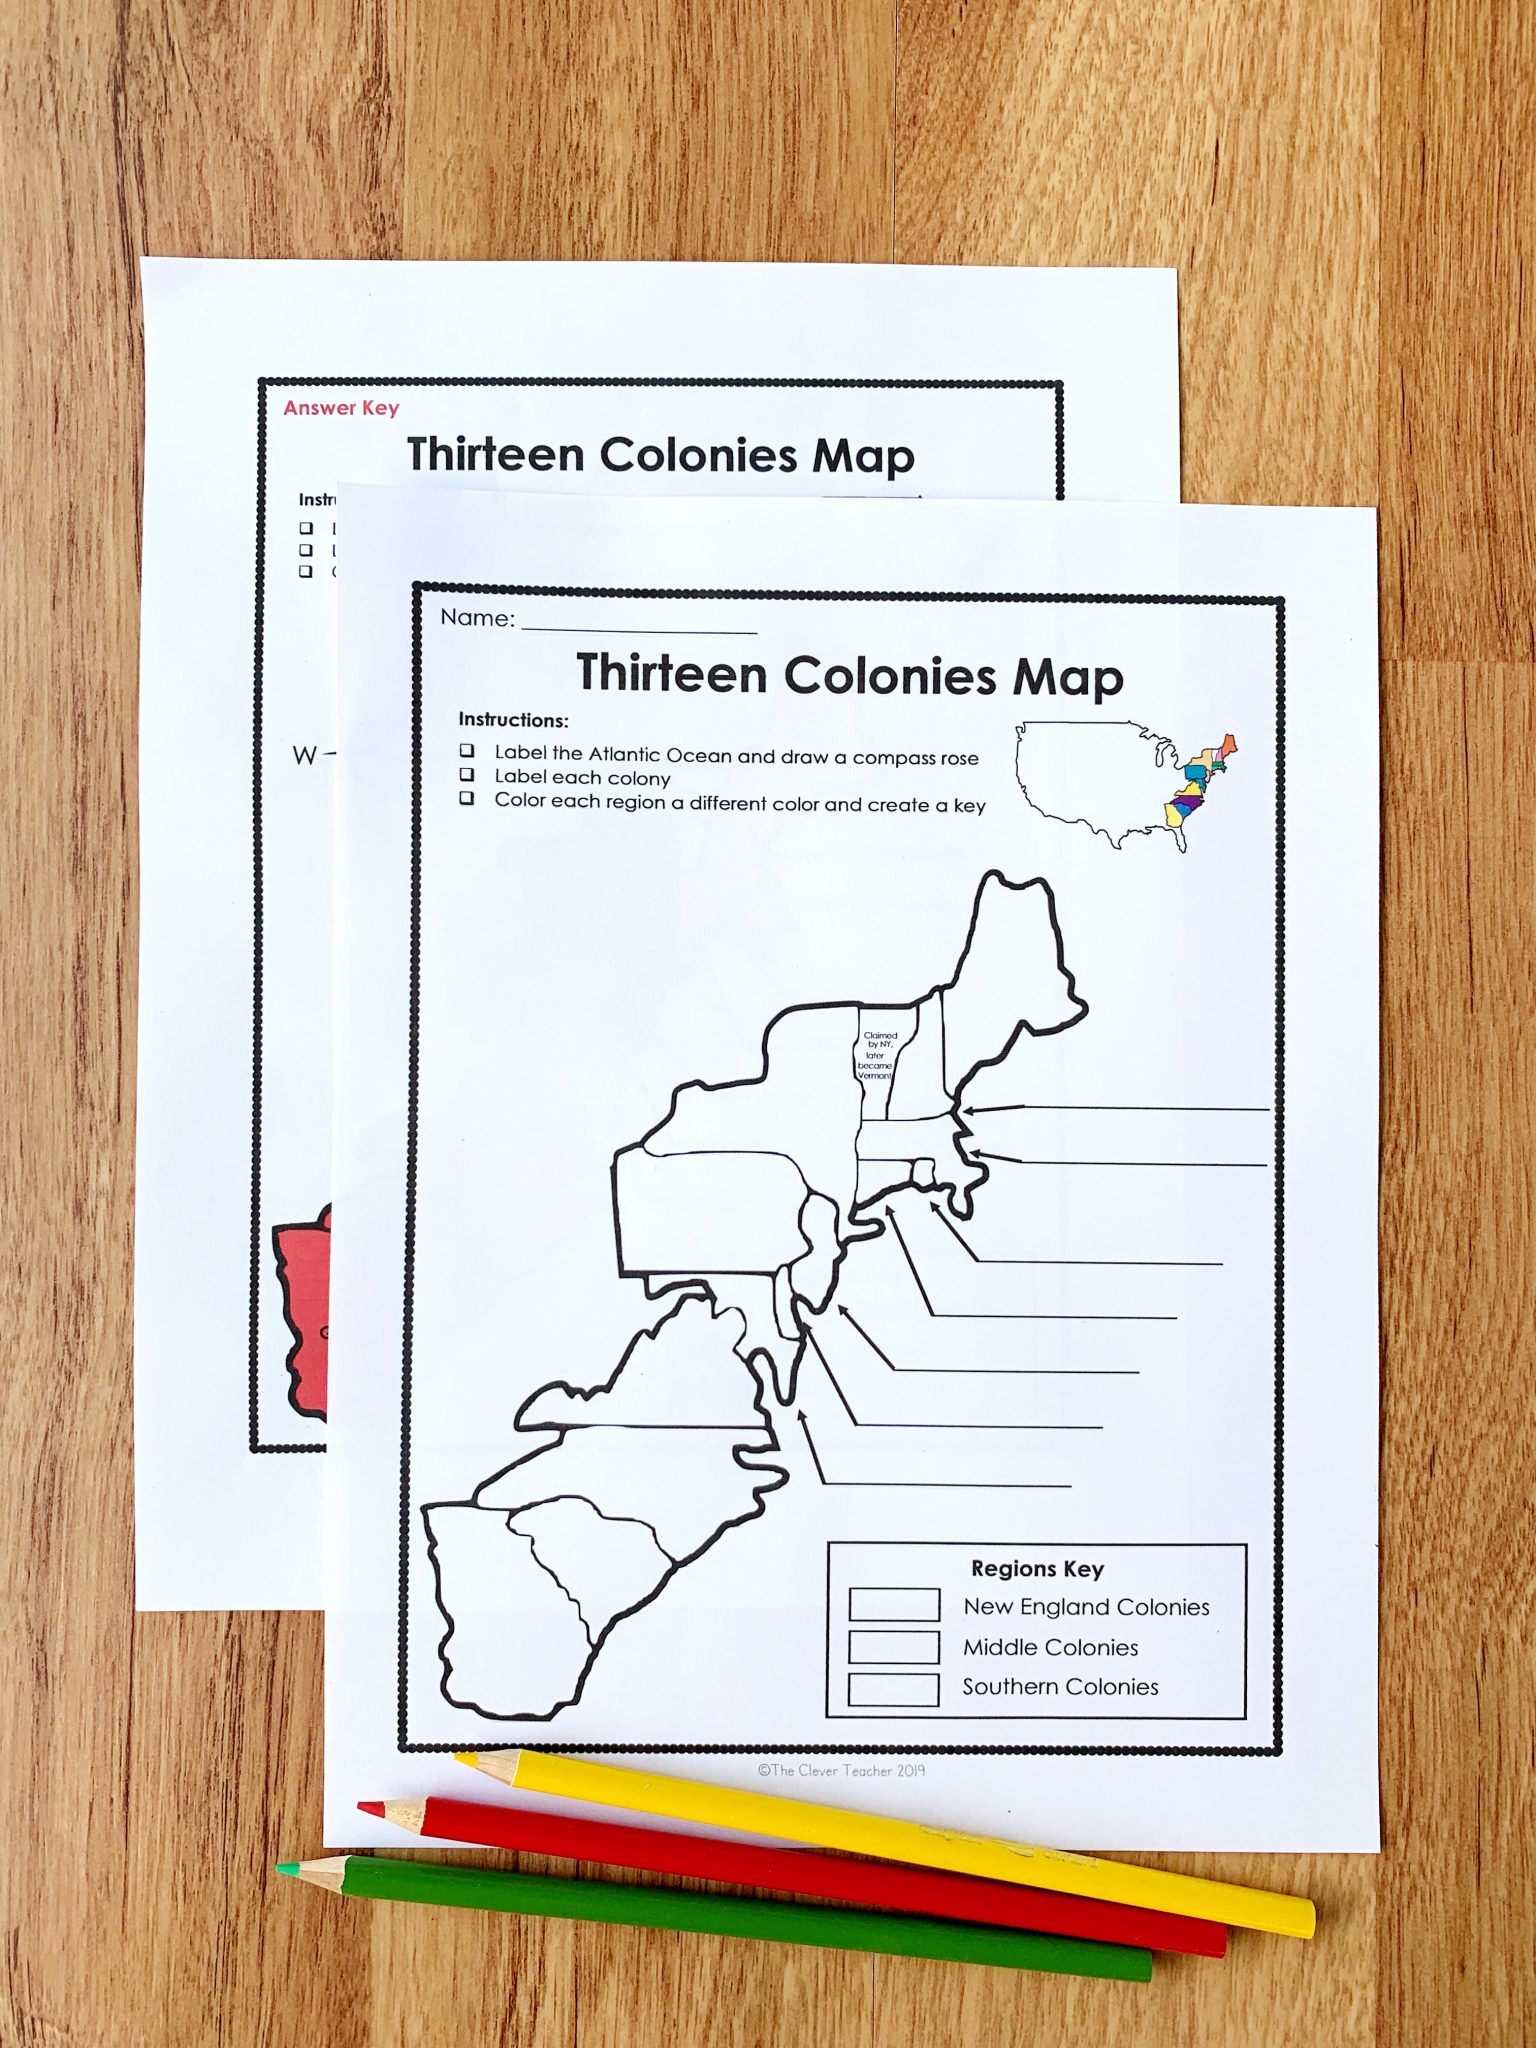 hight resolution of 13 Colonies Free Map Worksheet and Lesson for students